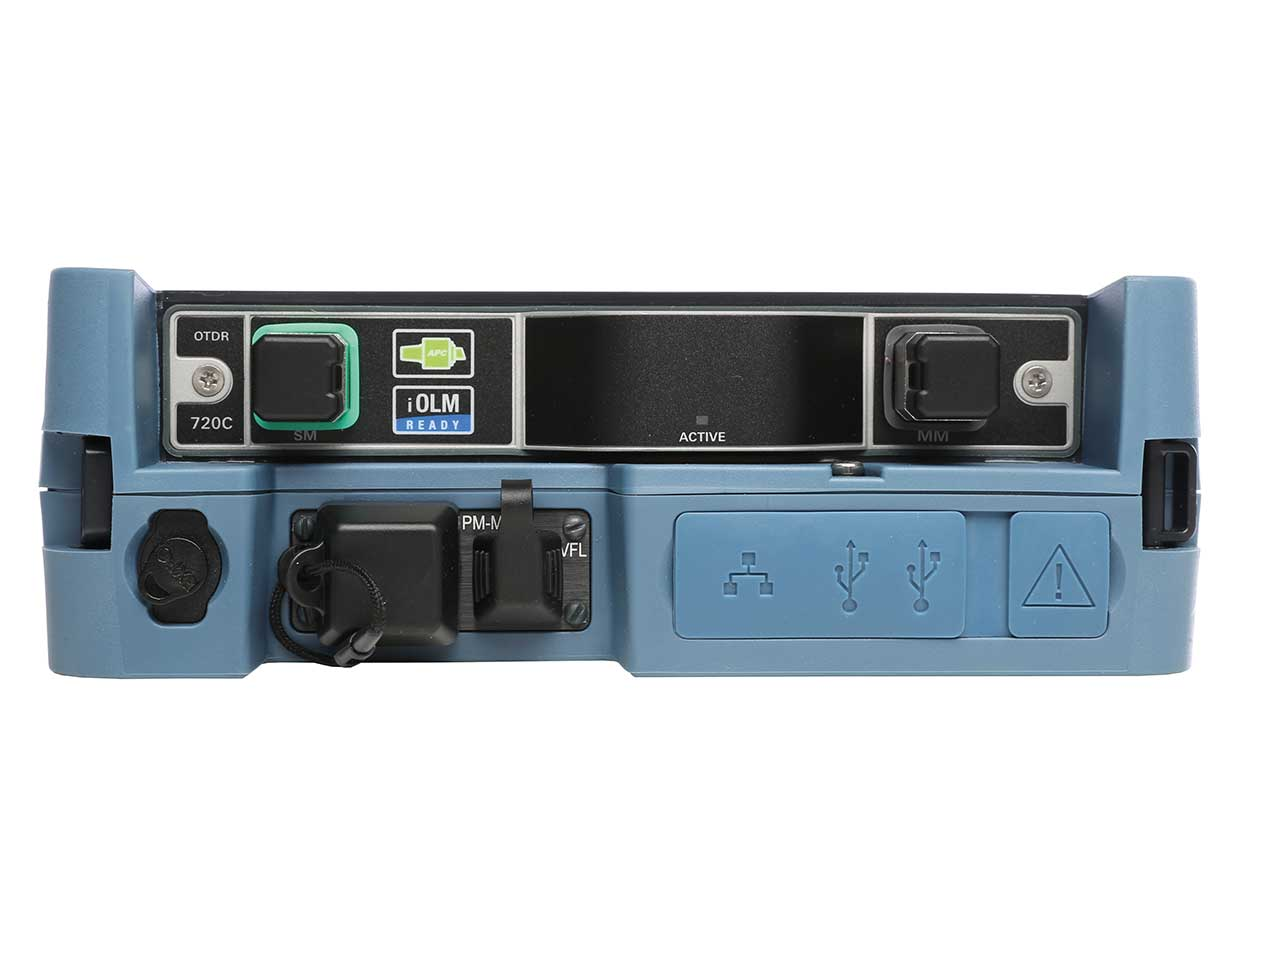 OTDR II Tester from IDEAL Networks